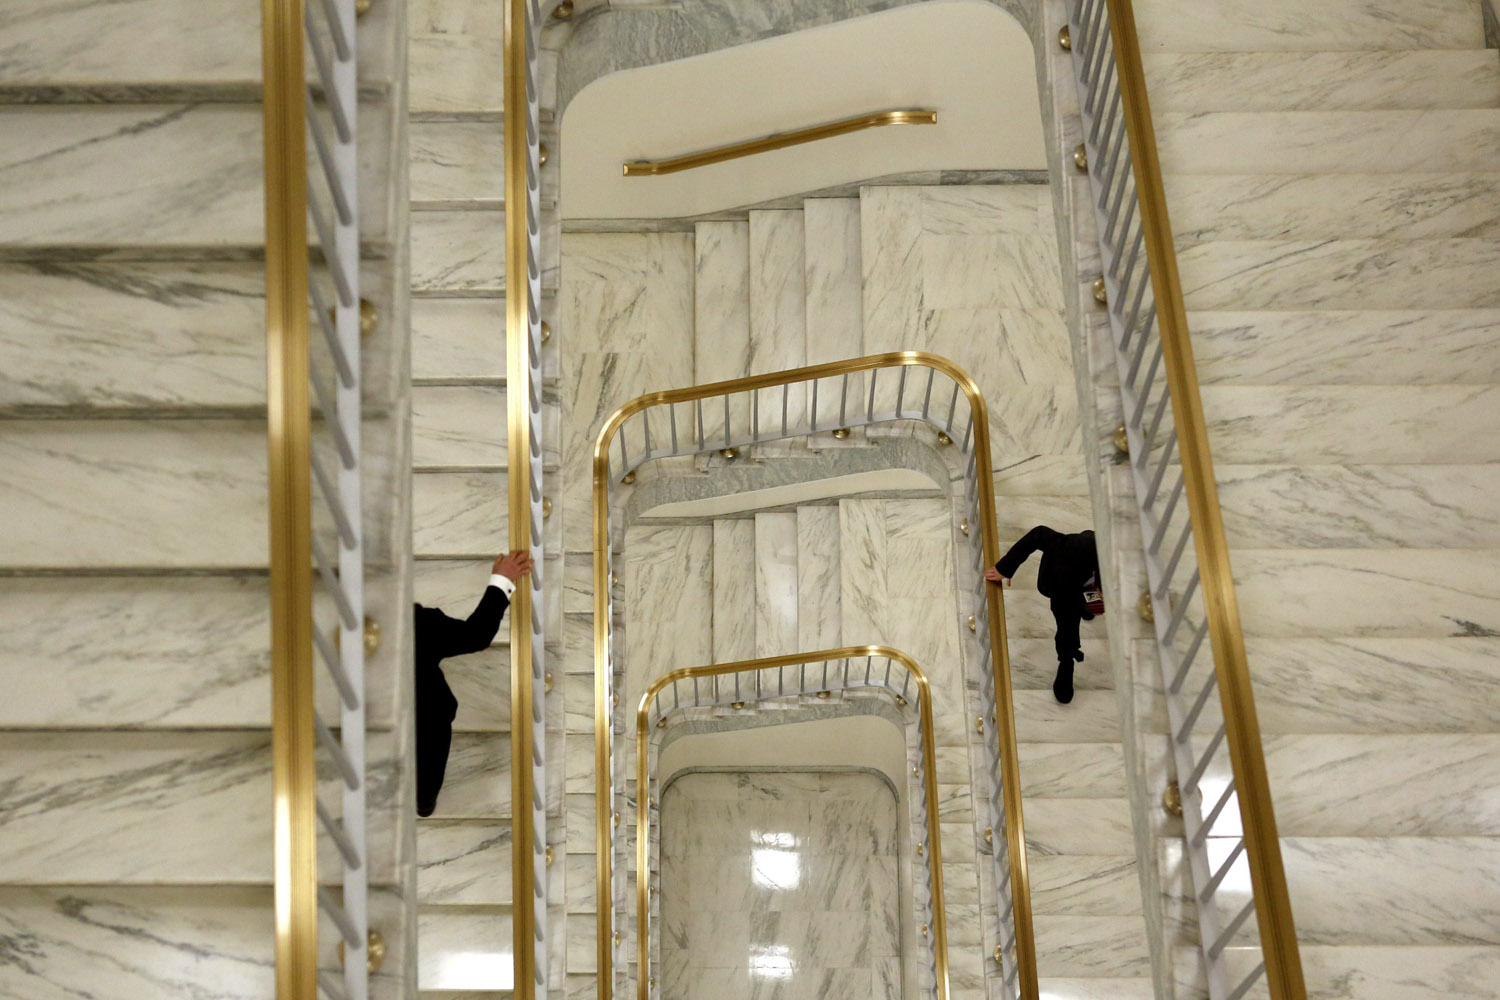 April 24, 2013.Two men hold onto the banister as they ascend a staircase in the Rayburn House Office Building on Capitol Hill in Washington.